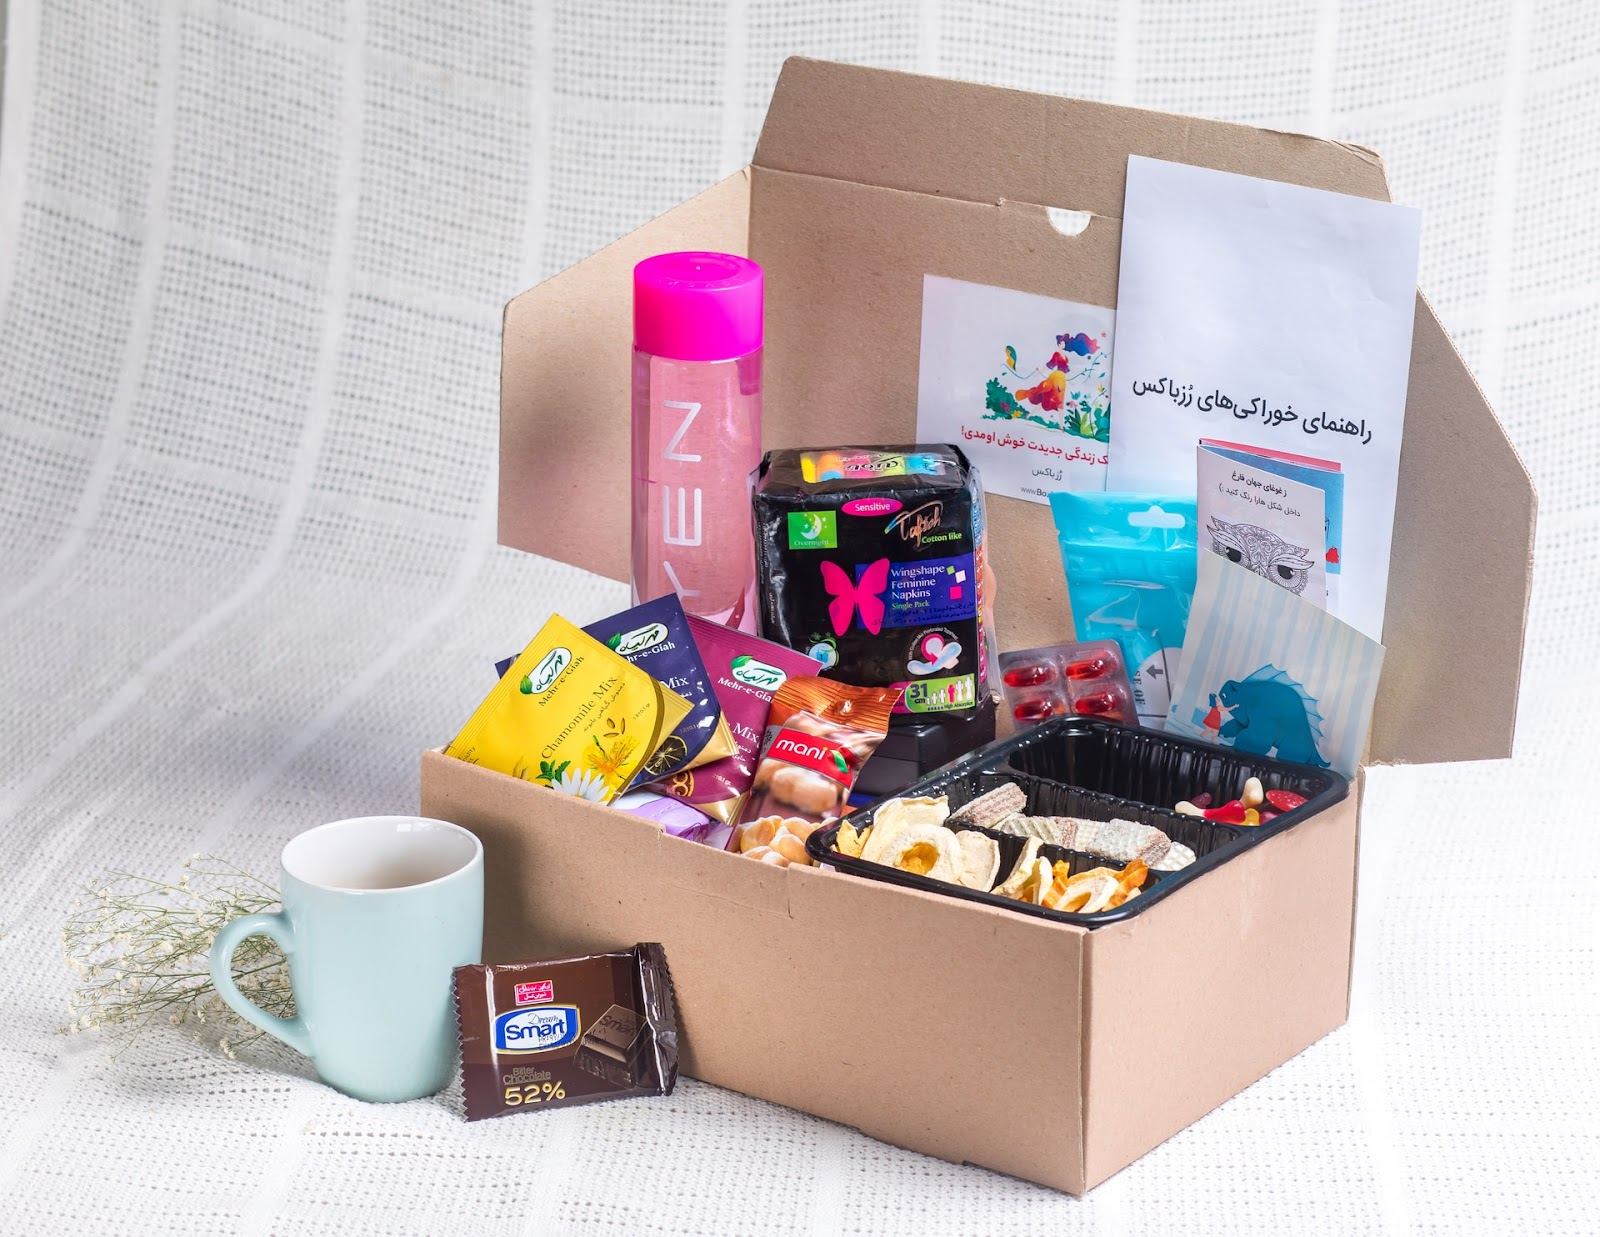 Custom mailer box filled with subscription products